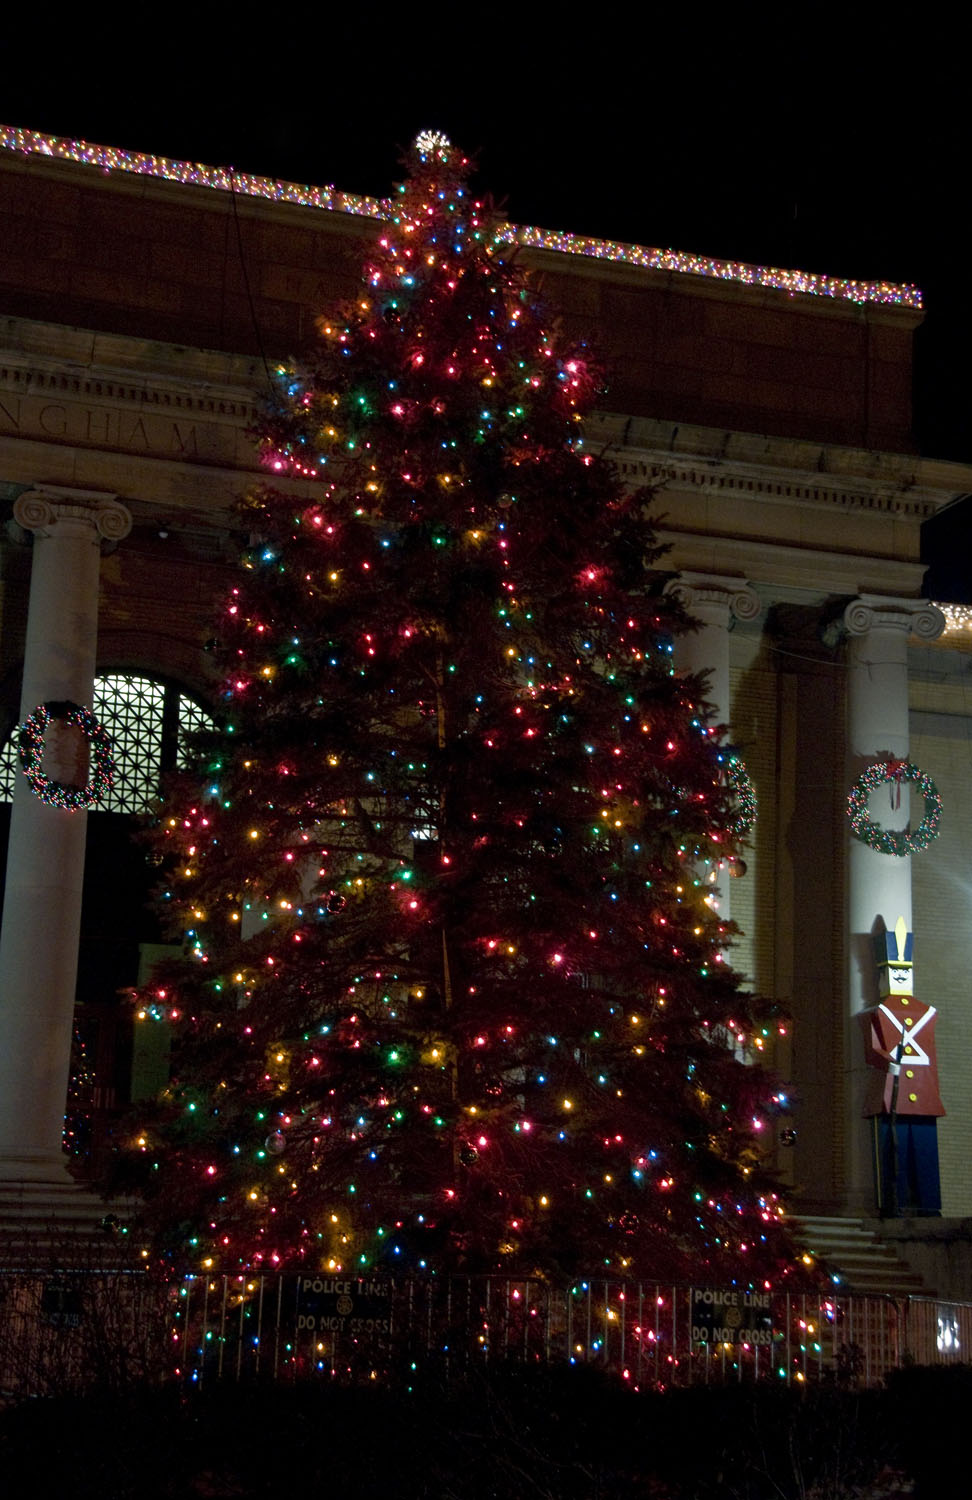 Picture of the holiday tree in front of the Memorial Building in Downtown Framingham